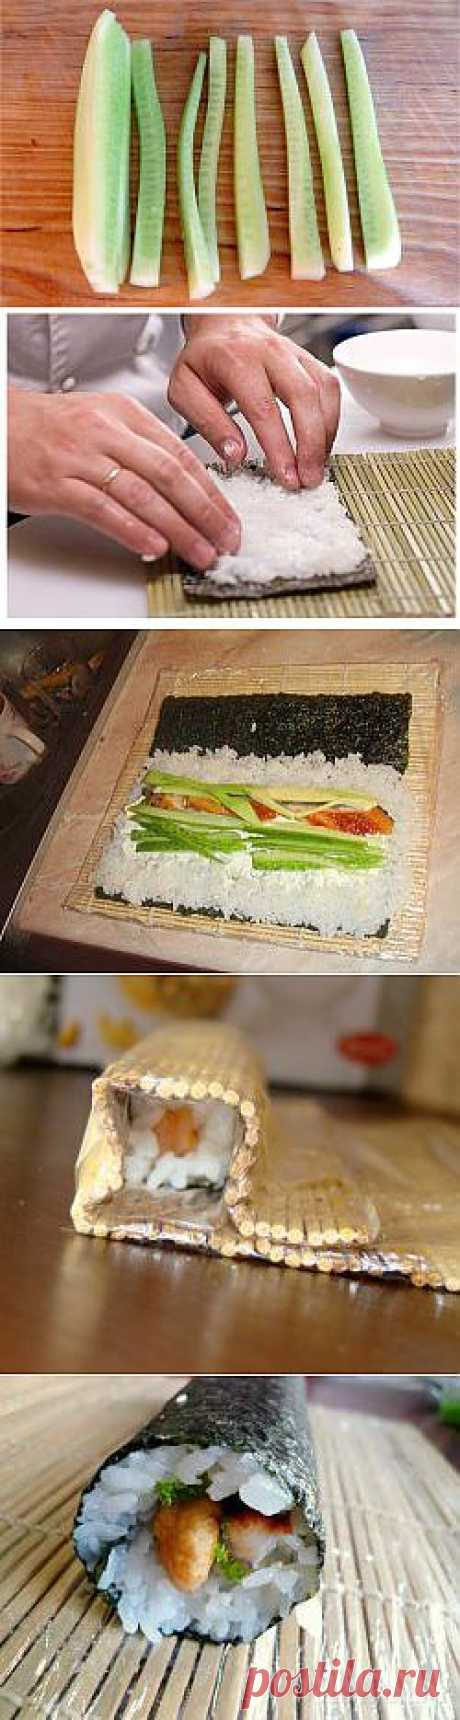 How to do sushi in house conditions?